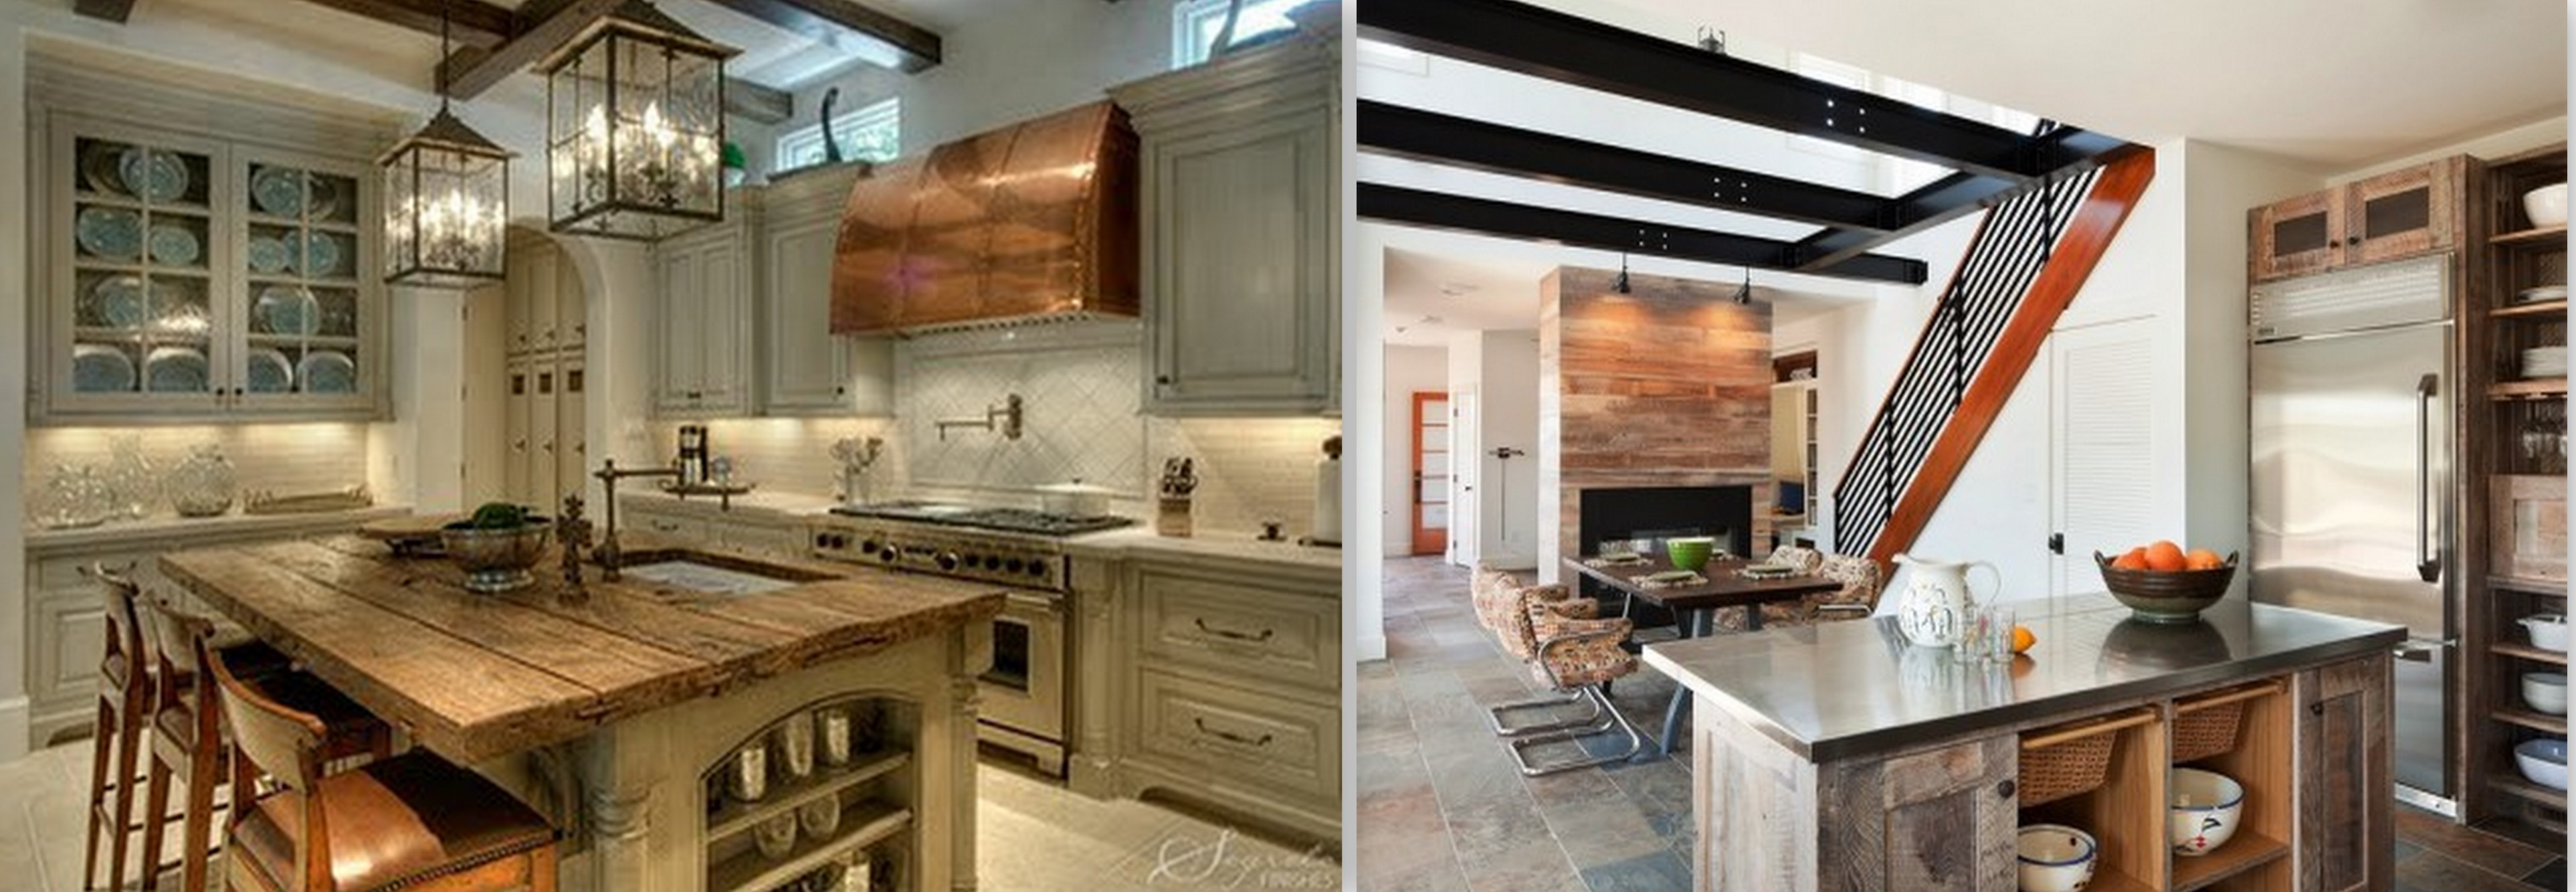 Reclaimed Lumber Kitchen Cabinets